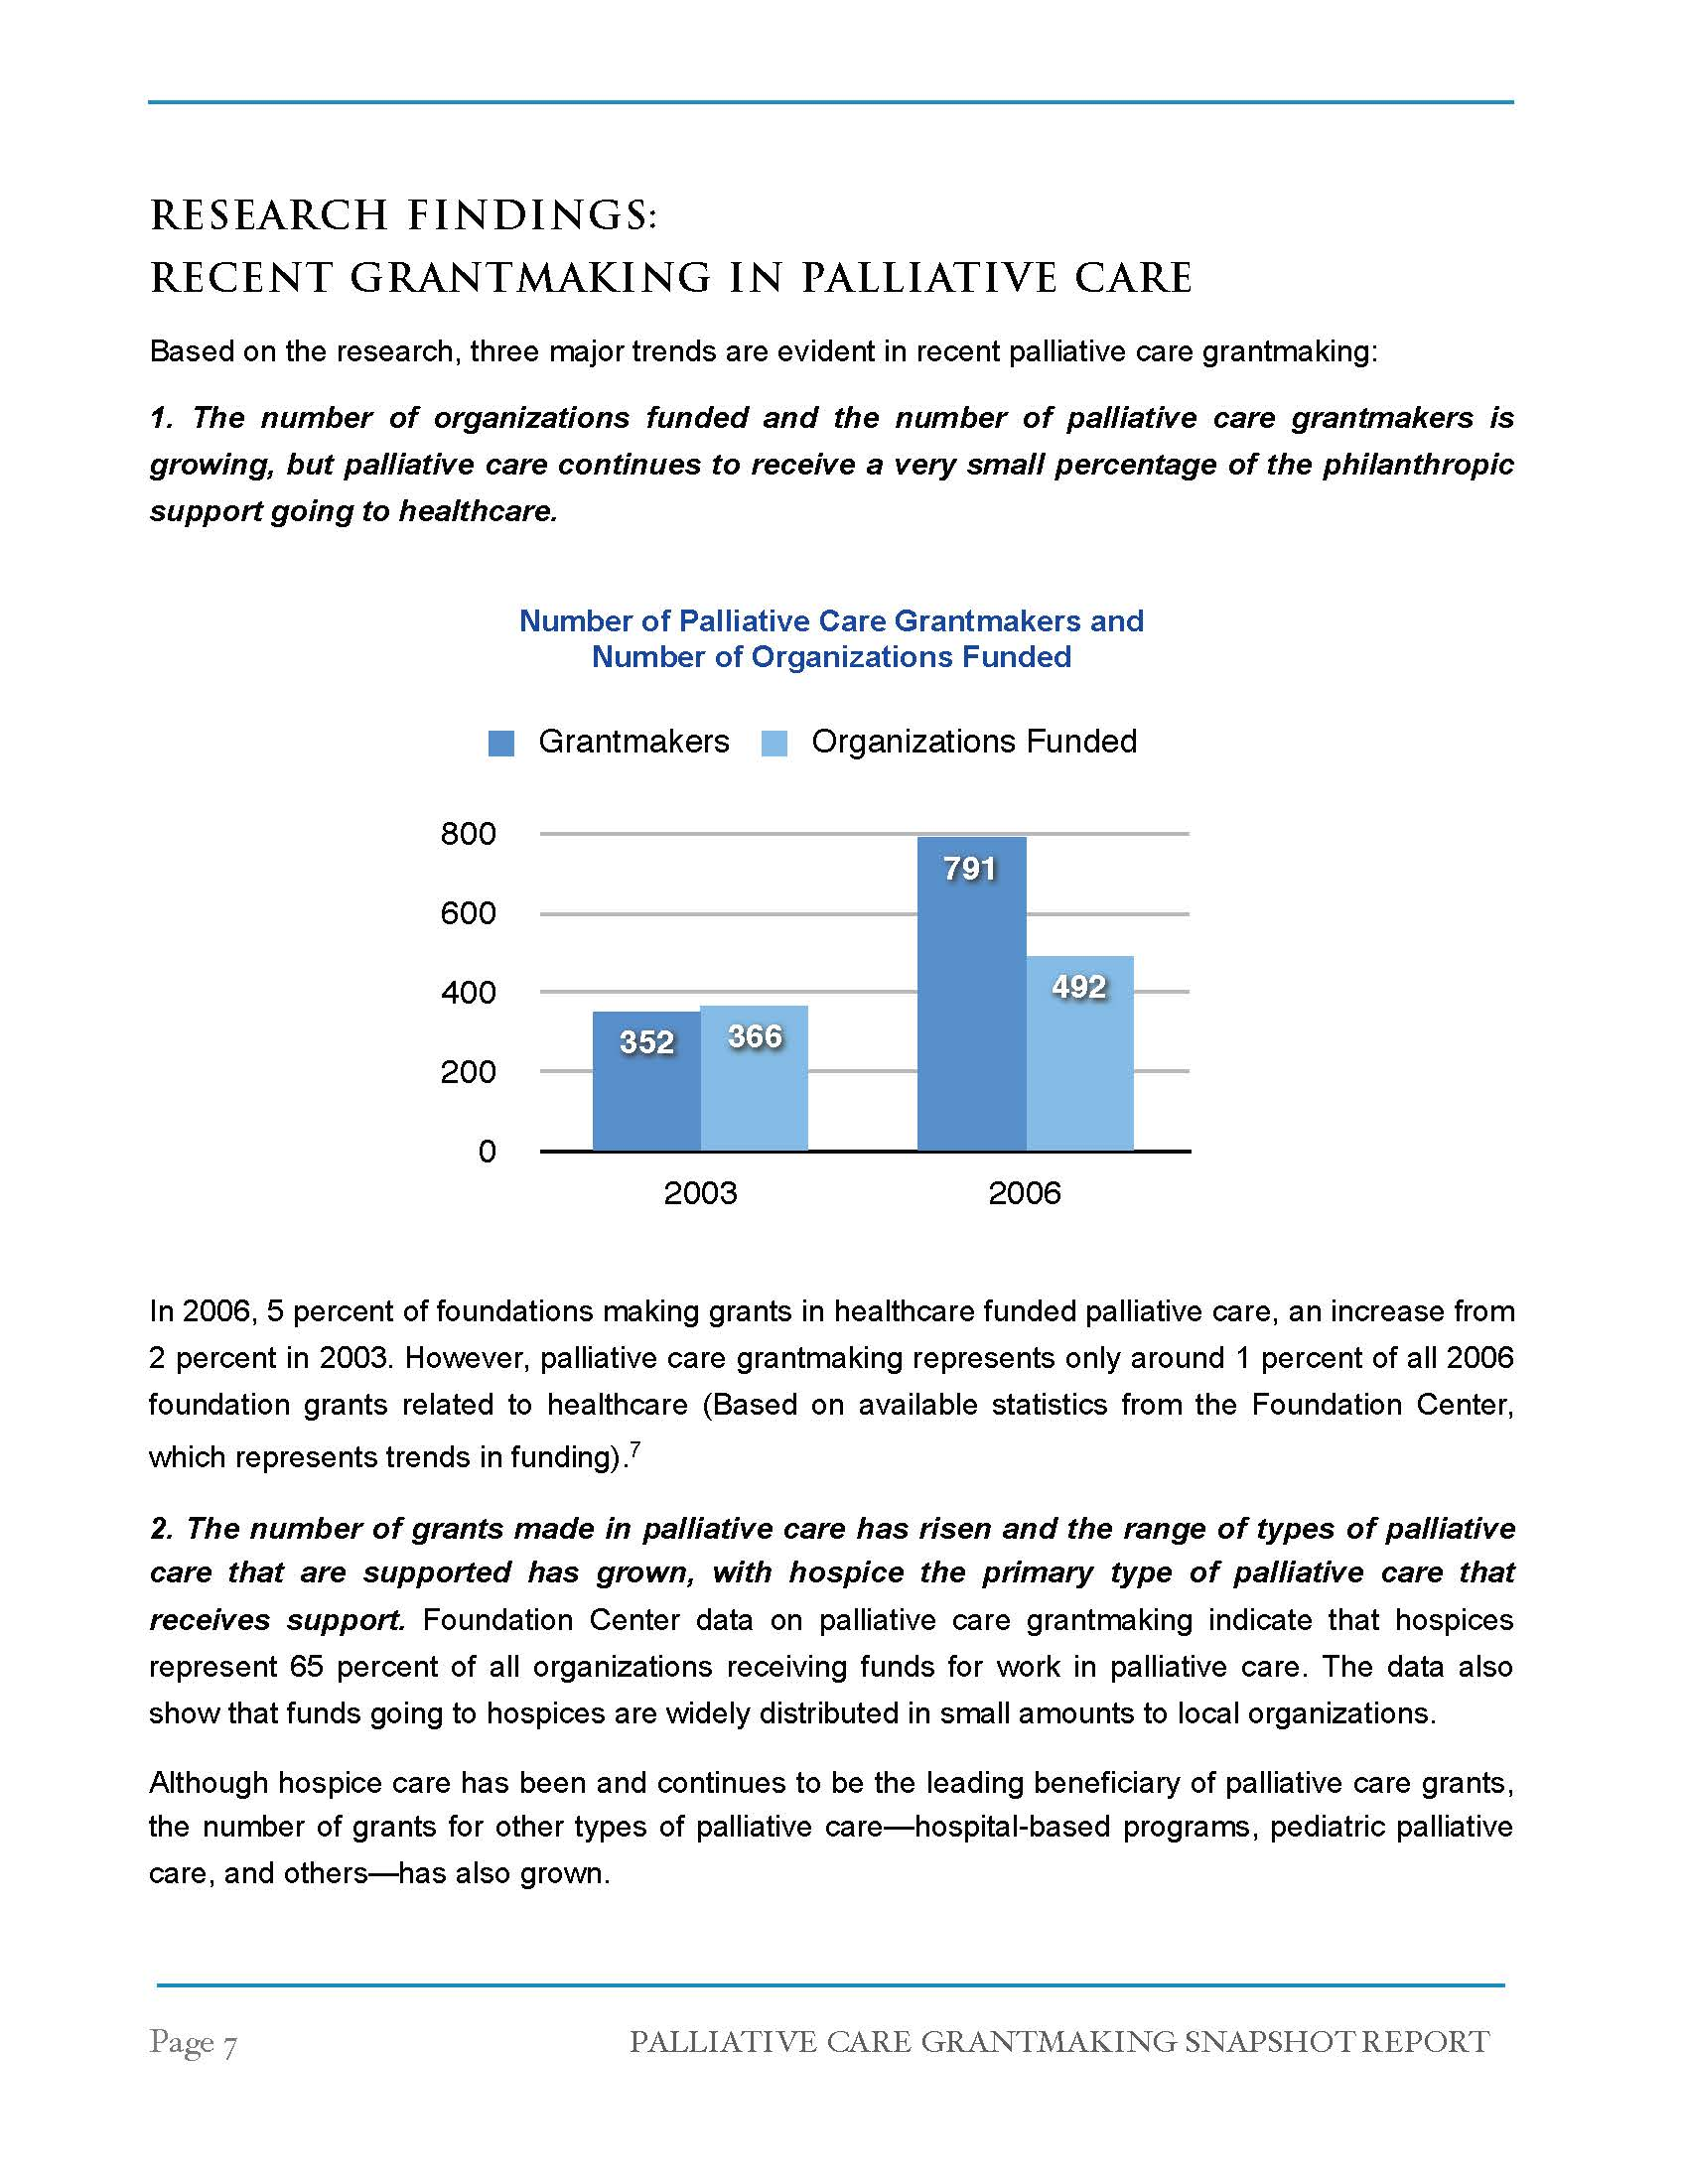 Palliative Care Grantmaking Snapshot Report_Page_09.jpg